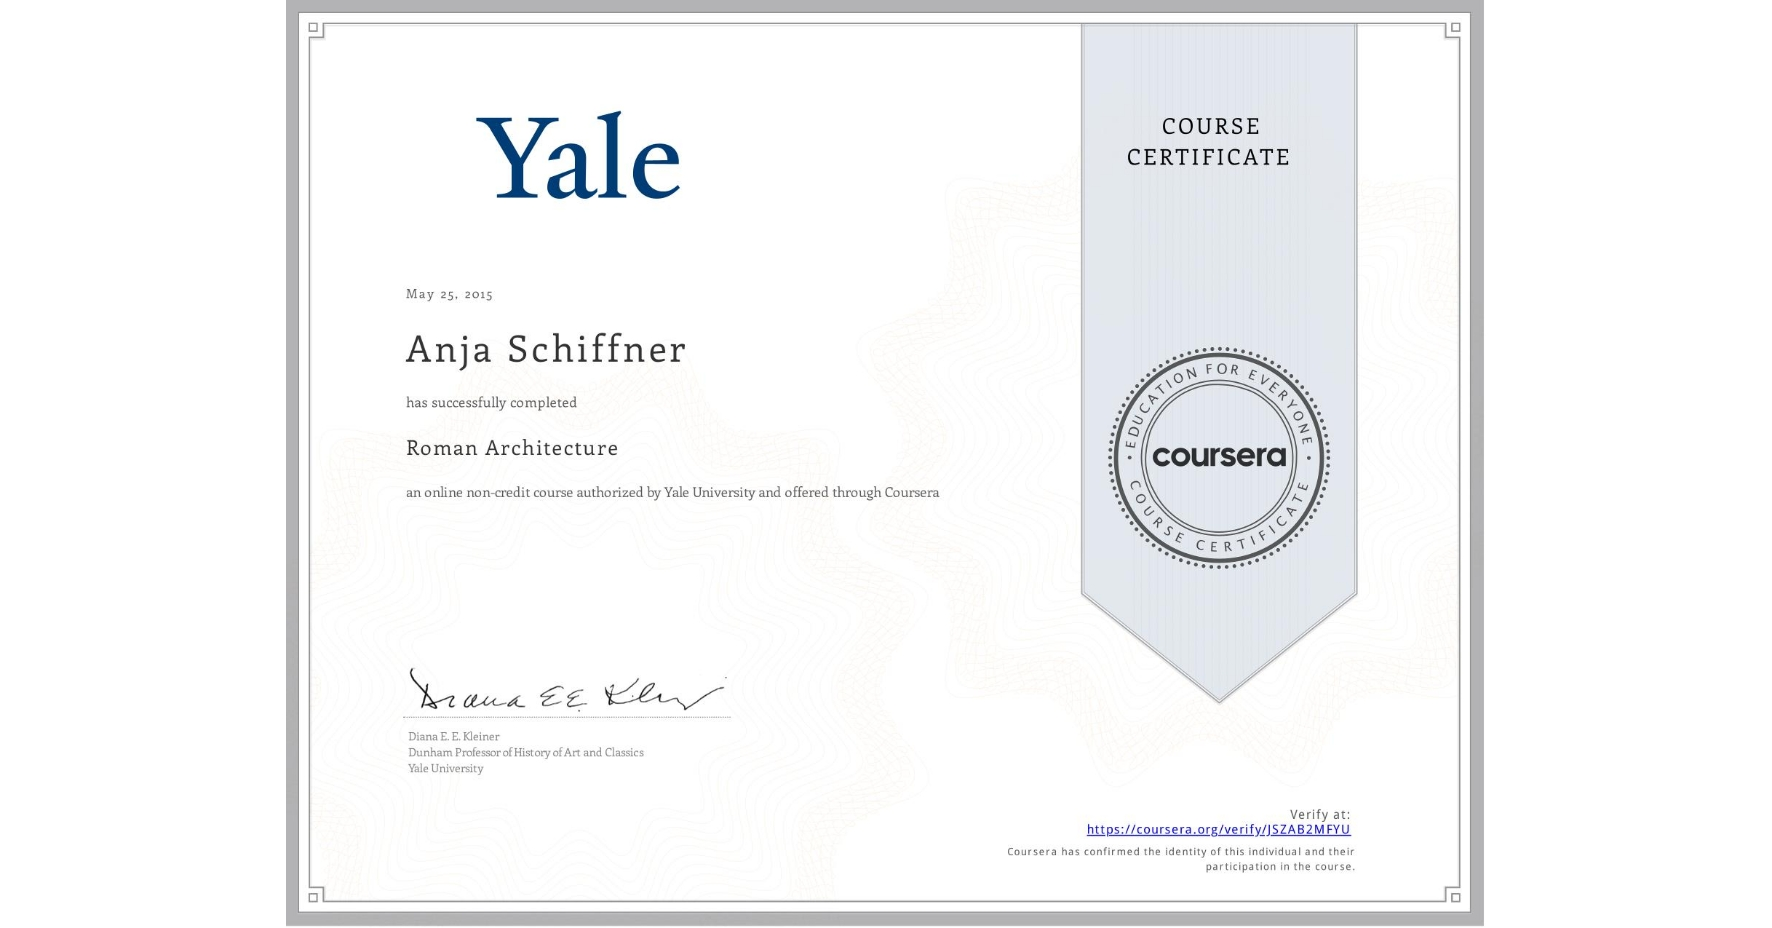 View certificate for Anja Schiffner, Roman Architecture, an online non-credit course authorized by Yale University and offered through Coursera